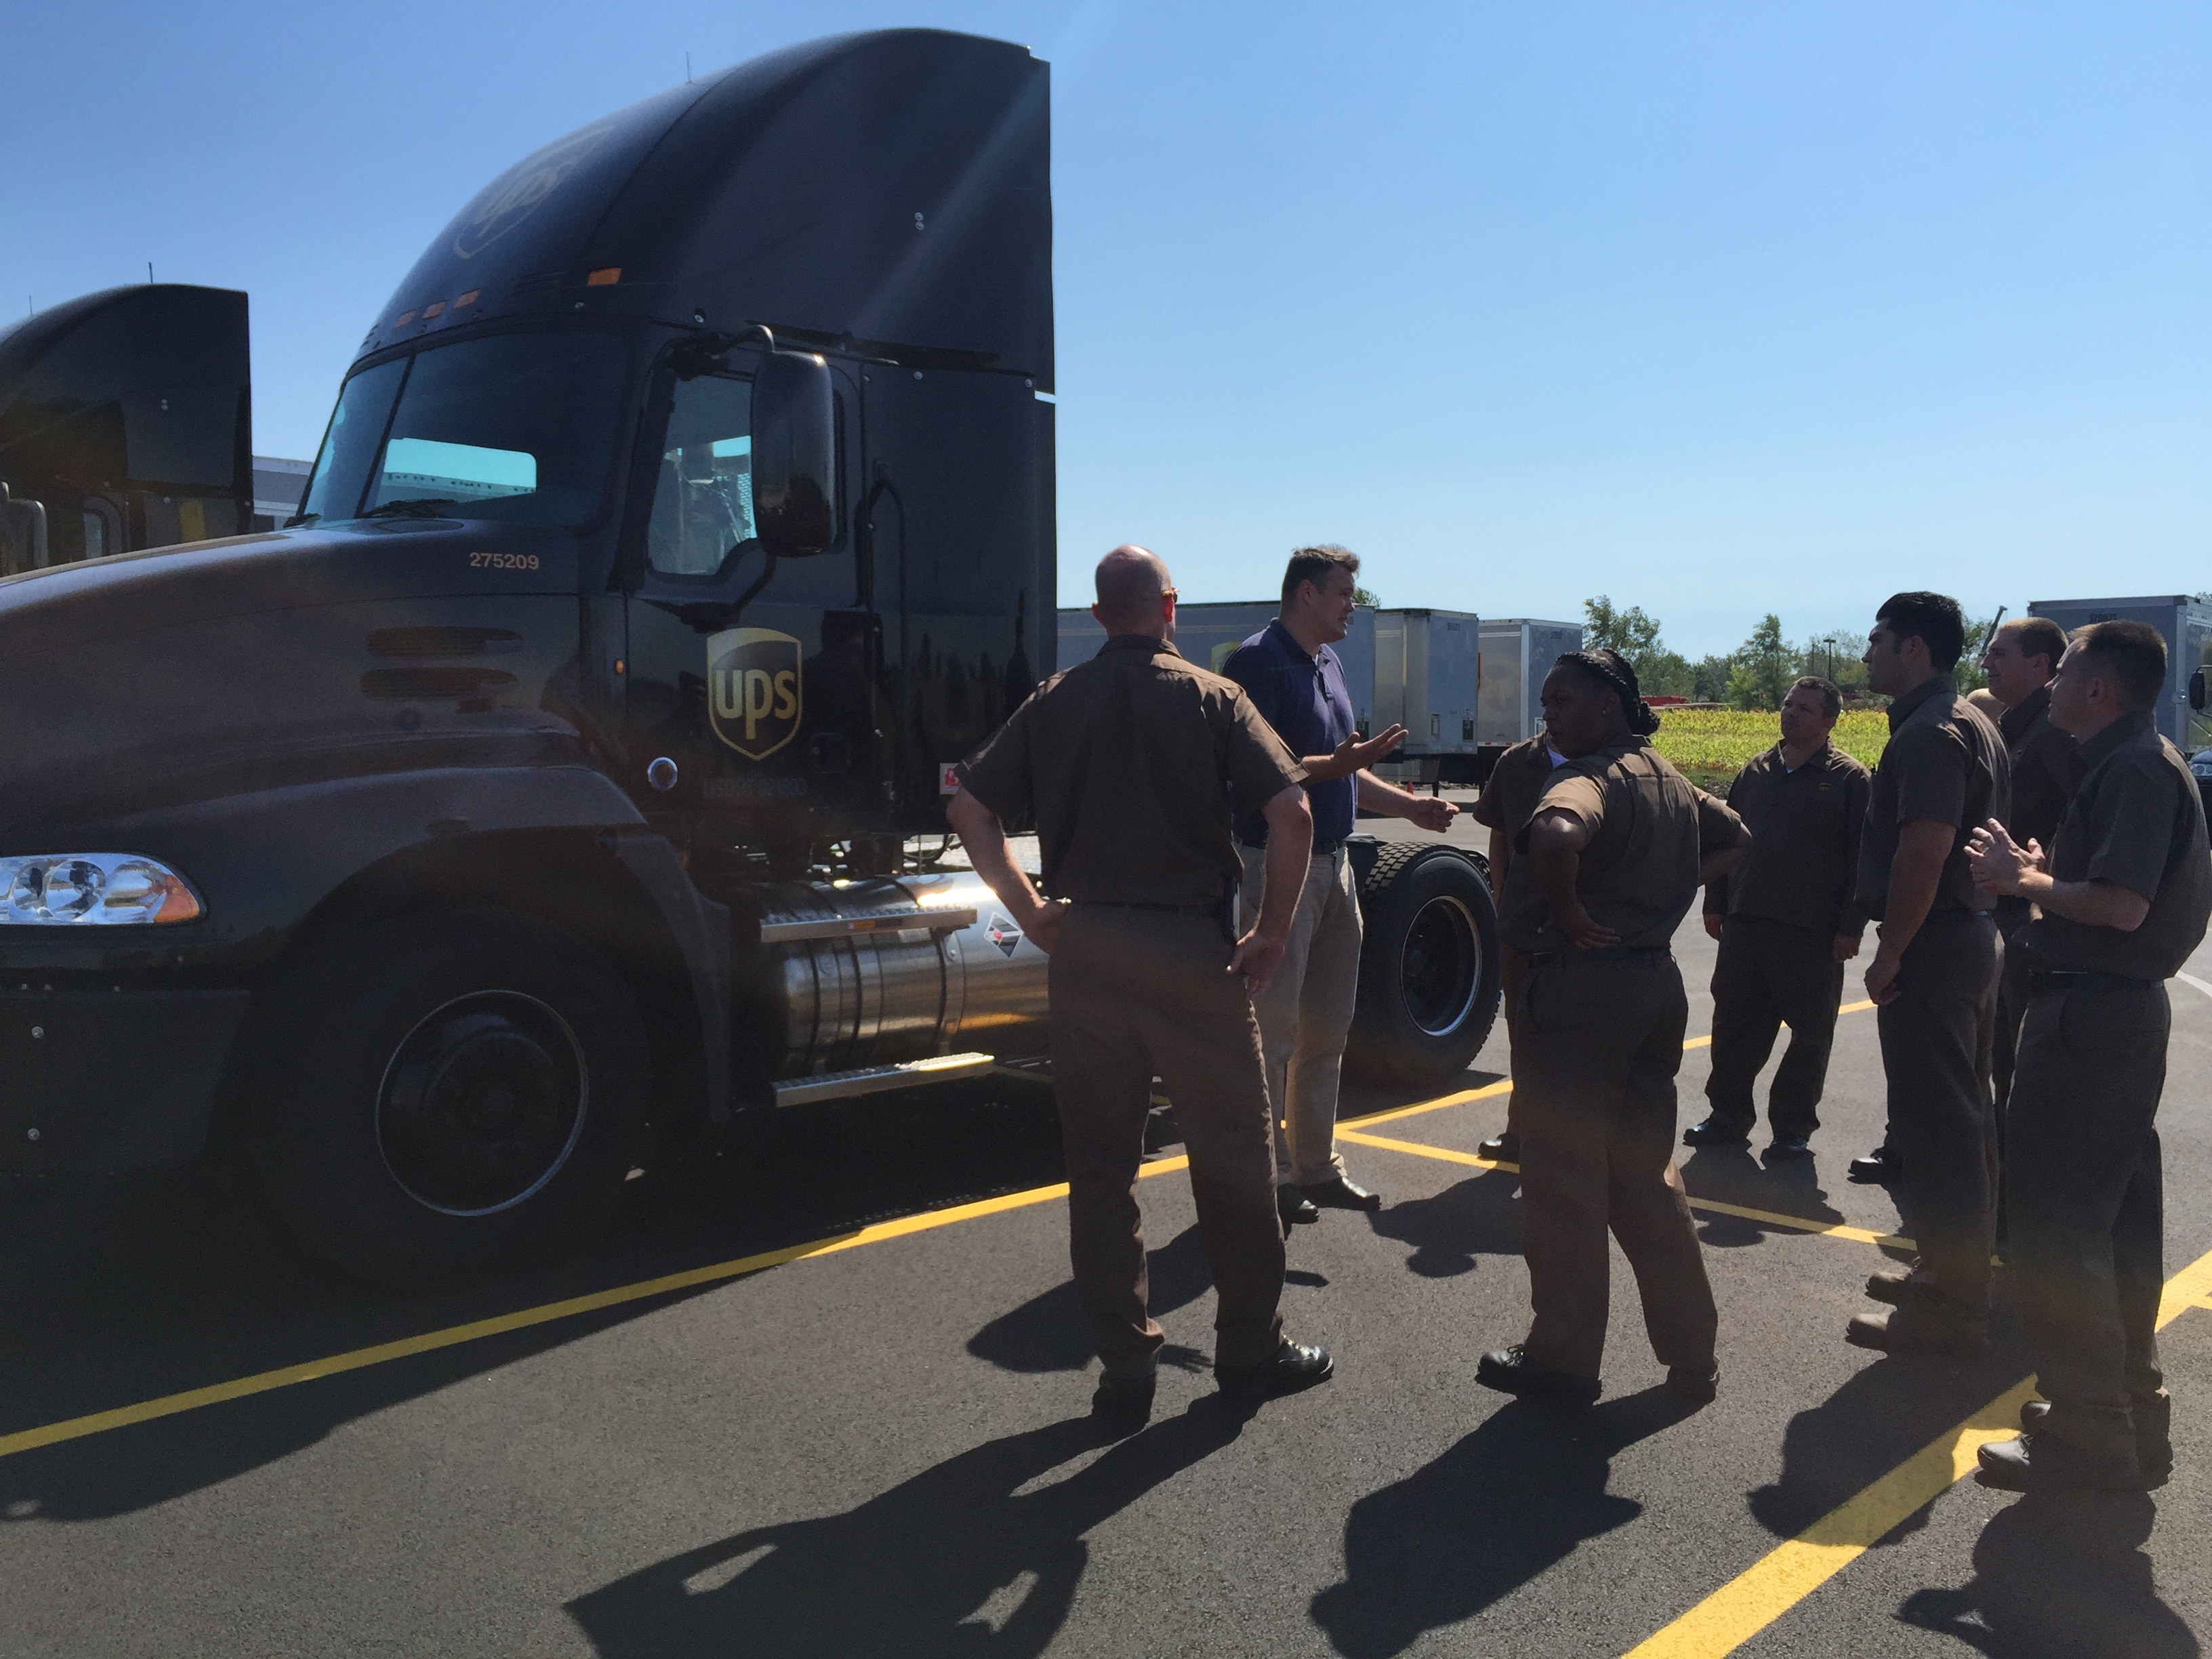 Learning alternative fuels LNG and CNG tractors, UPS is the first company to implement successfully on-road alternative fuels in Commercial Vehicles.